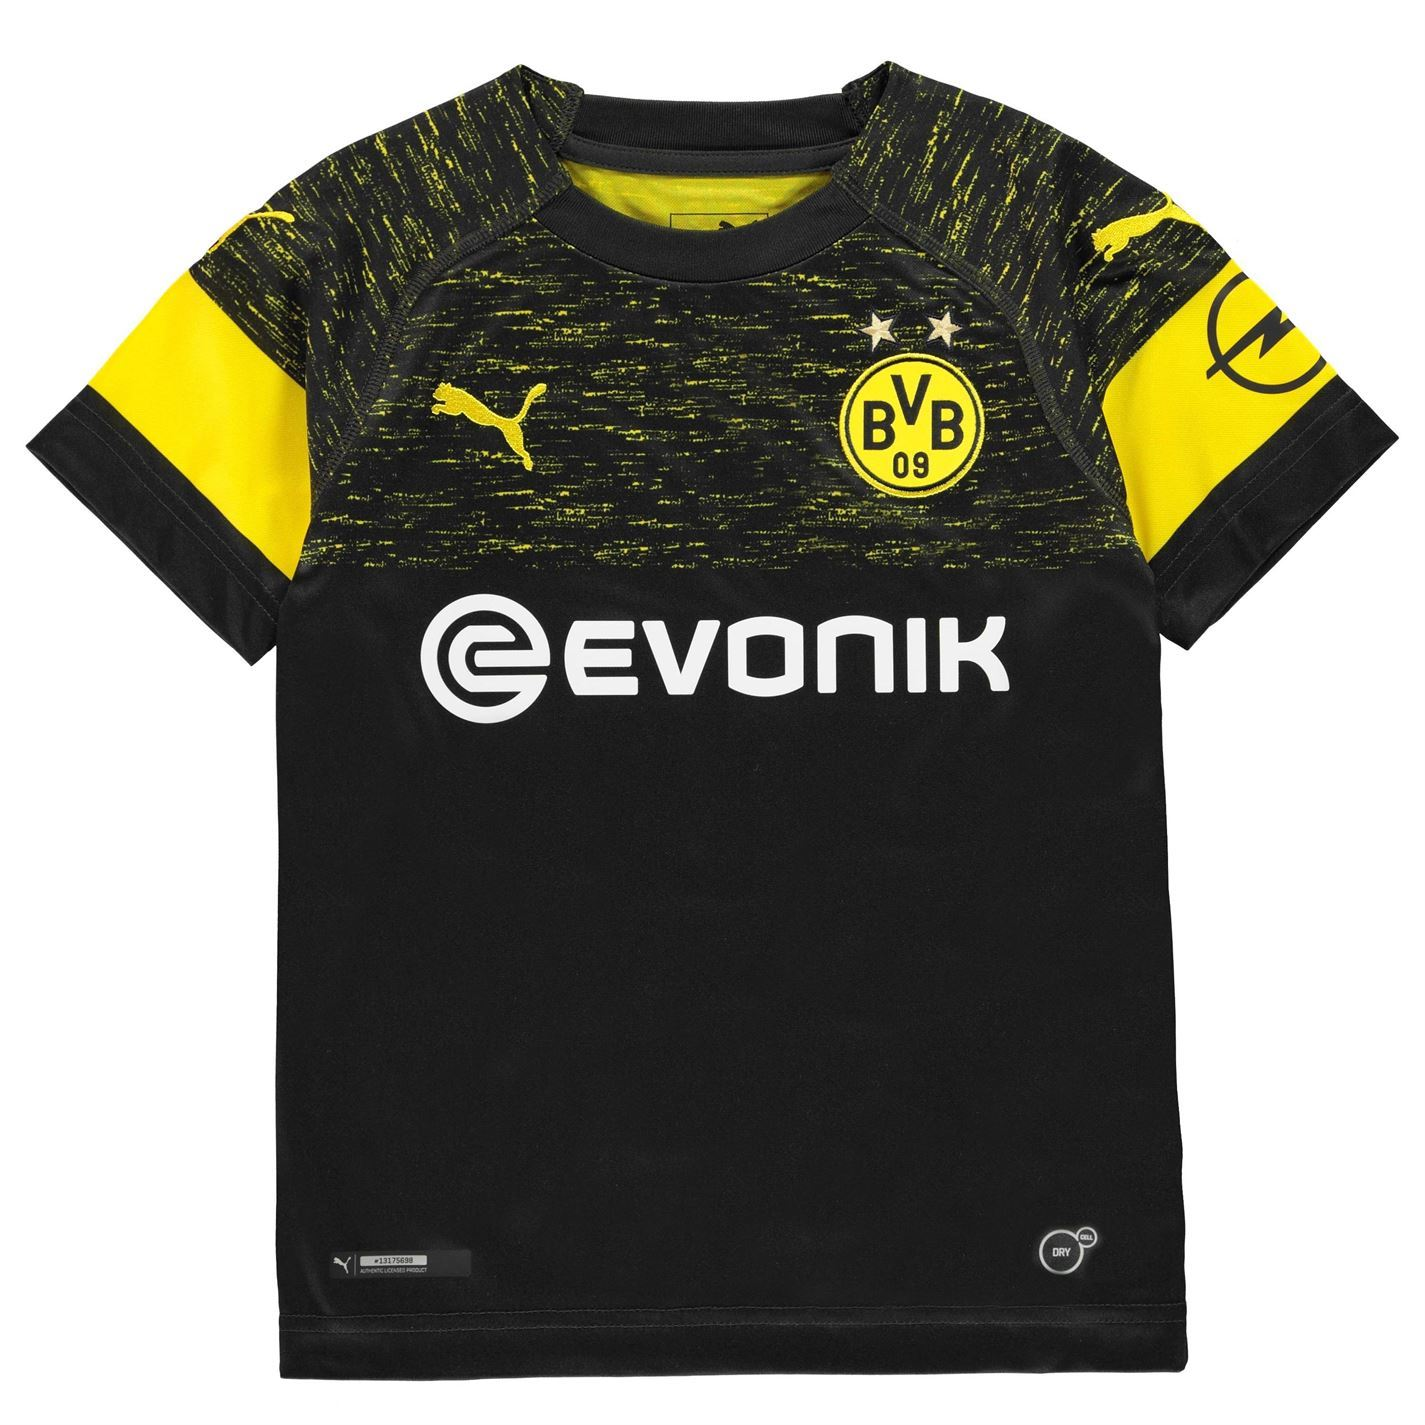 new style 6c4b6 7cf58 Details about Puma Borussia Dortmund Away Jersey 2018 2019 Juniors Black  Football Soccer Shirt